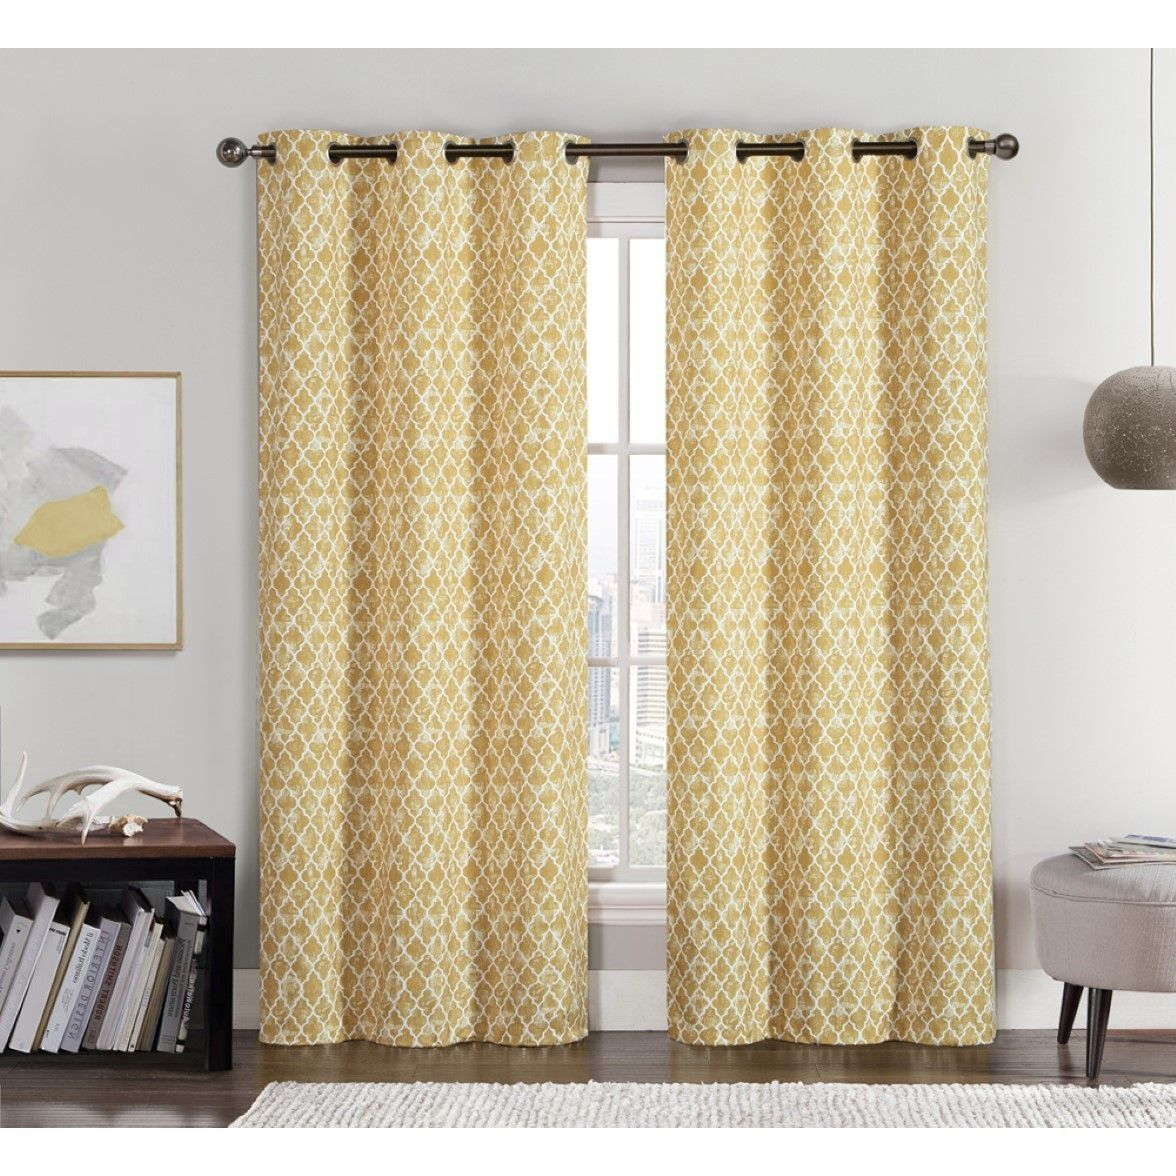 Window Coverings To Keep Heat Out Vcny Amadora Grommet Top 84 Inch Curtain Panel Pair 76 X 84